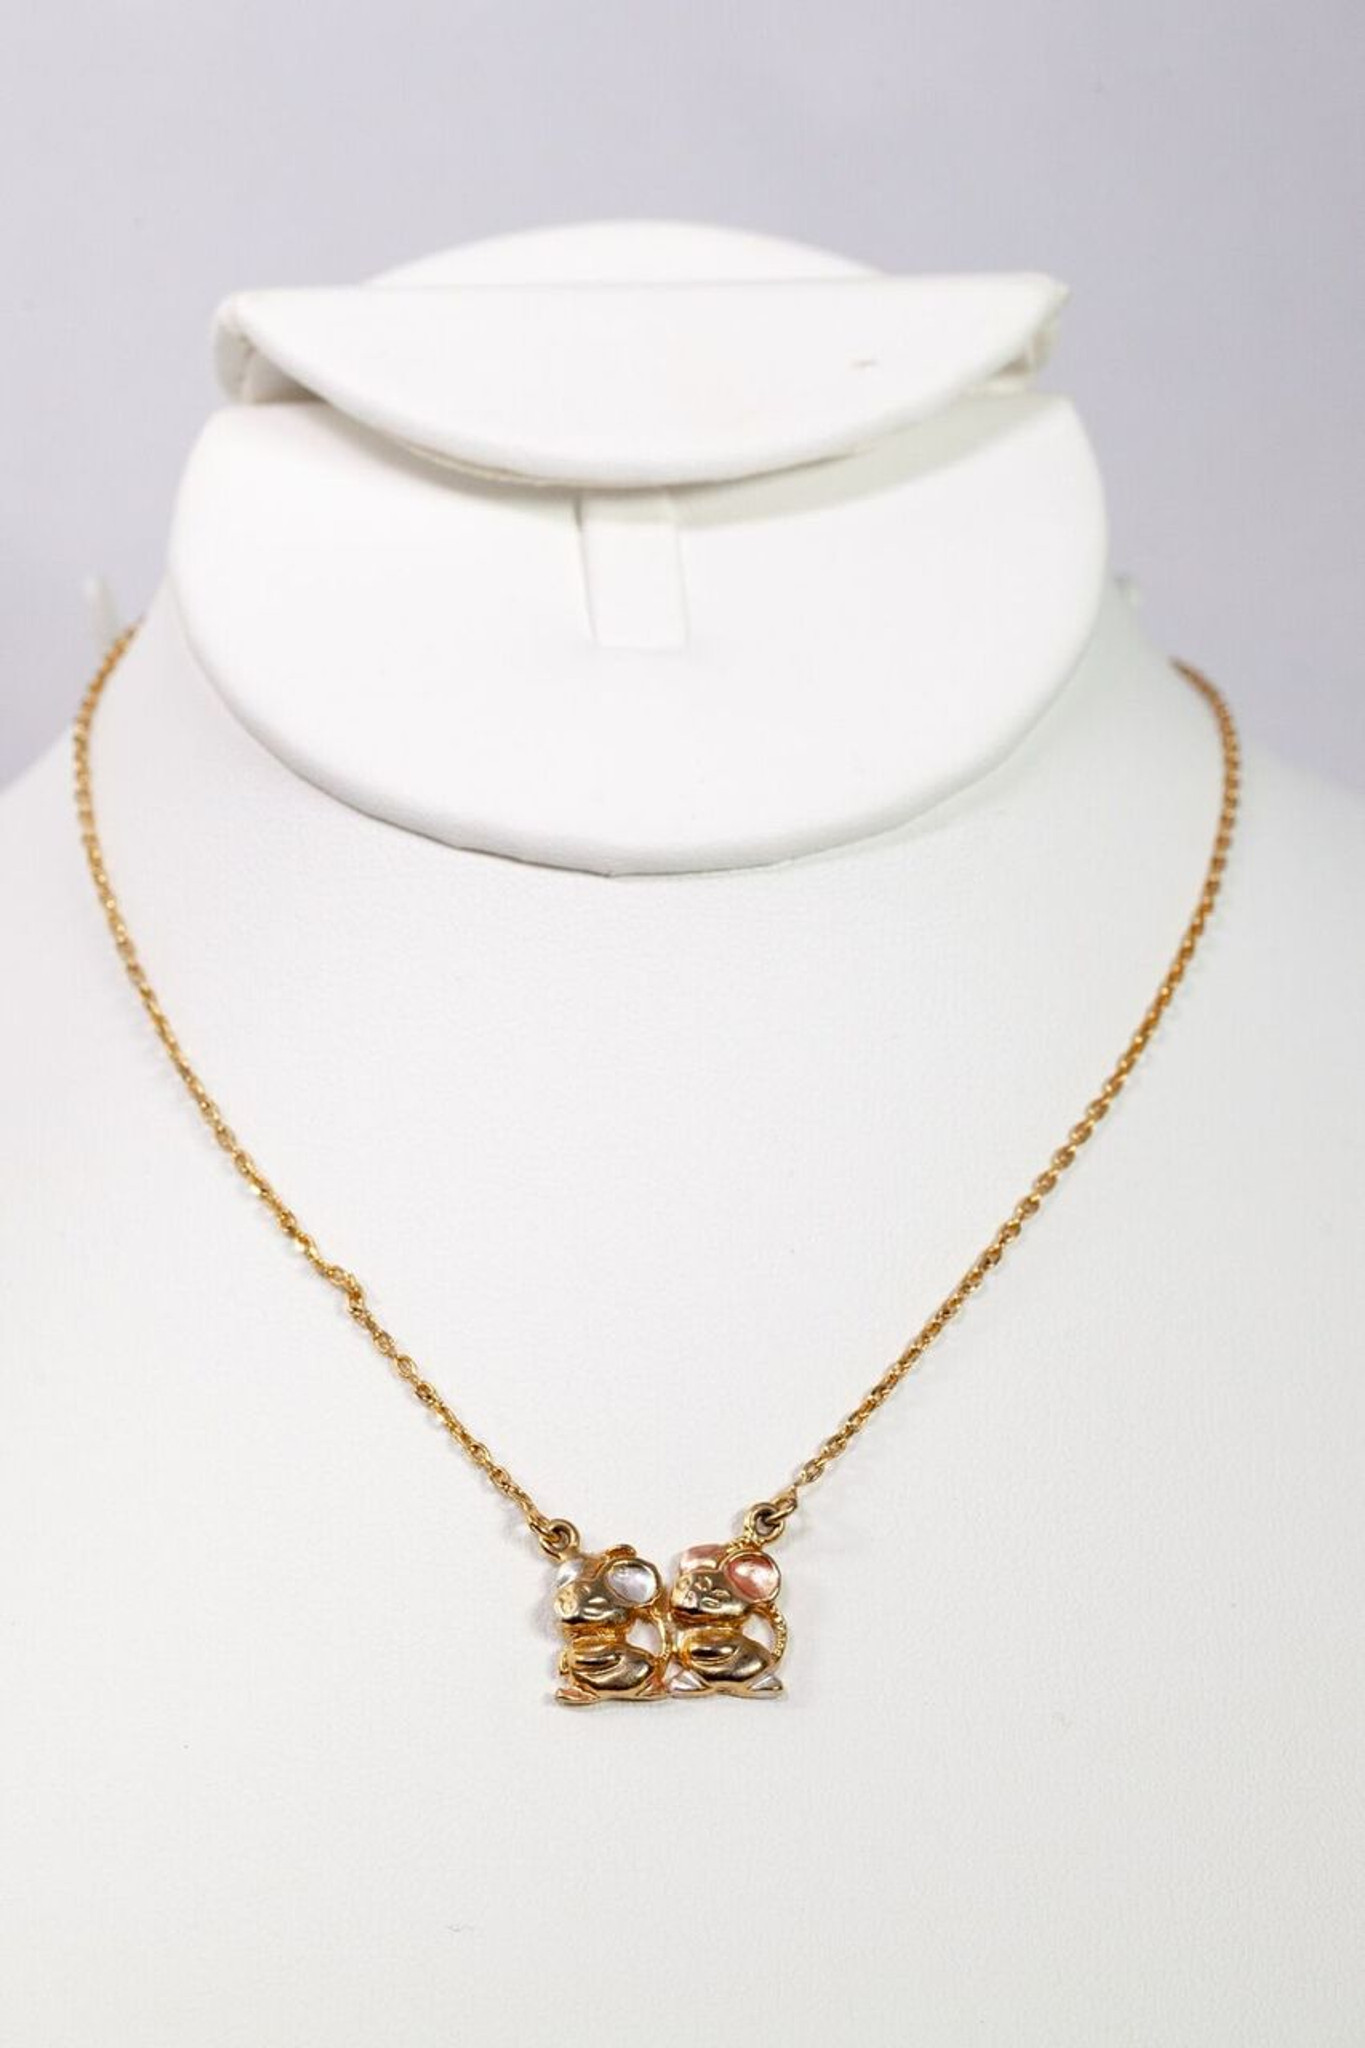 14k Gold Plated Mice Pendant Necklace